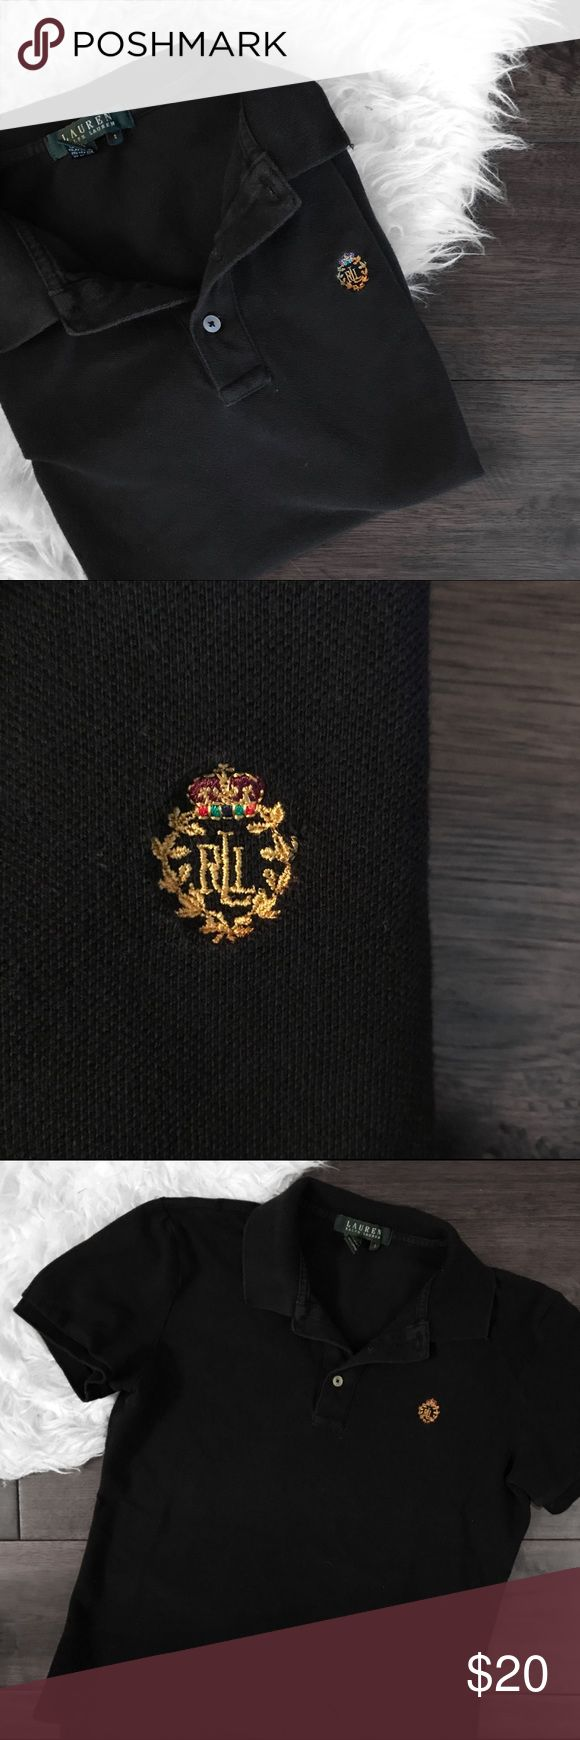 Vintage Lauren by Ralph Lauren Black Polo Shirt Extremely rare vintage black polo shirt from Lauren by Ralph Lauren featuring regal embroidered gold crest logo and crown. One hundred percent cotton, size small, and in good condition. Lauren Ralph Lauren Tops Button Down Shirts